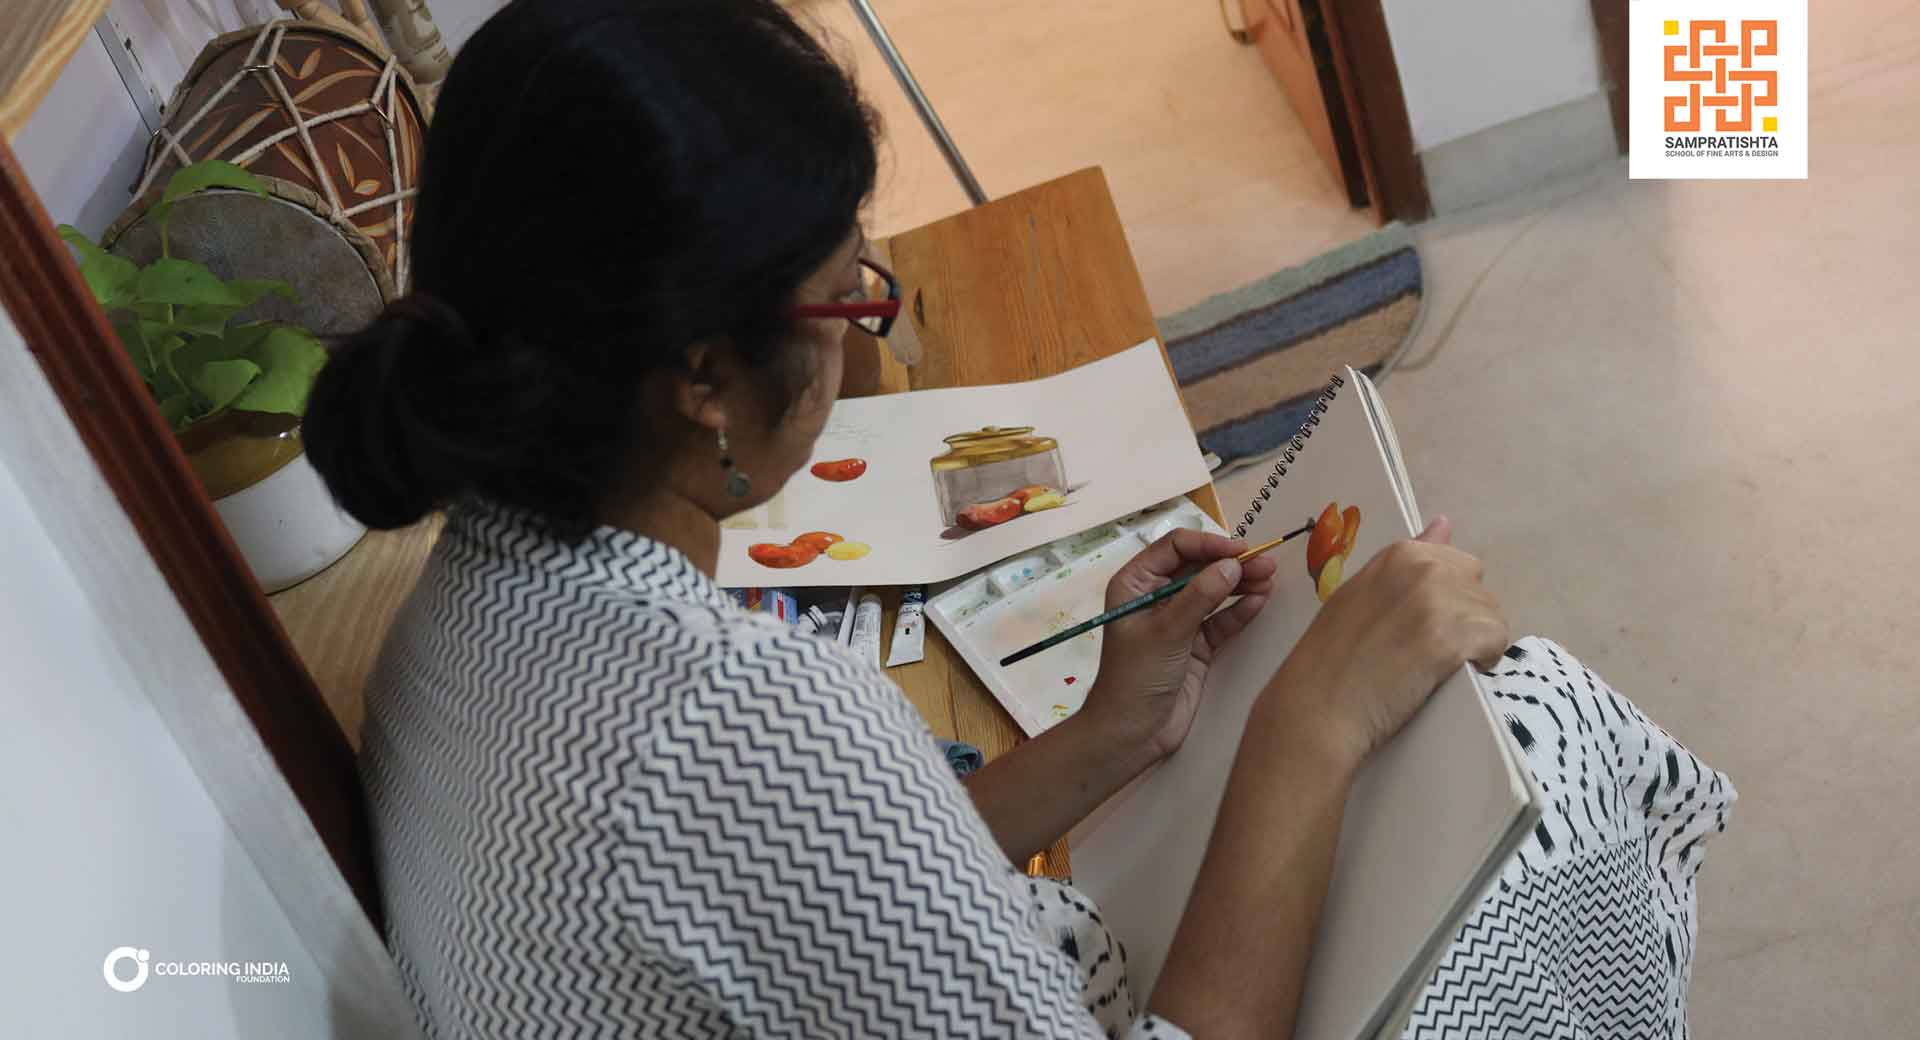 SPECIALIZE IN WATERCOLOR PAINTING AT SAMPRATISHTA